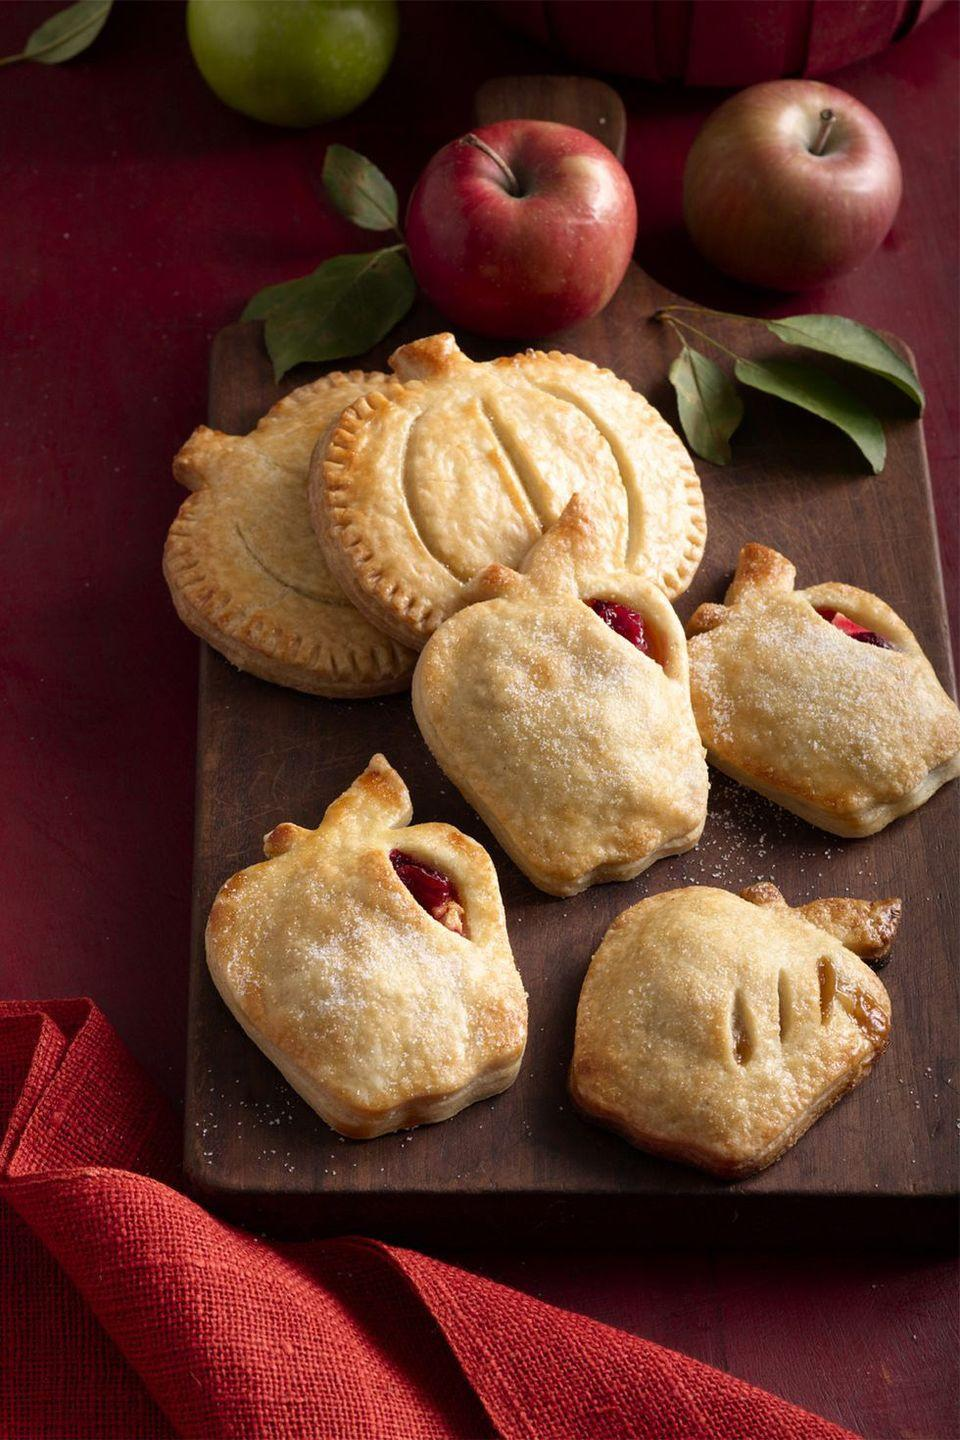 """<p>These apple and cranberry hand pies are perfectly sized for individual portions, but they are so delicious, you'll be reaching for seconds.</p><p><em><strong><a href=""""https://www.womansday.com/food-recipes/food-drinks/recipes/a60186/apple-cranberry-hand-pies/"""" rel=""""nofollow noopener"""" target=""""_blank"""" data-ylk=""""slk:Get the Apple and Cranberry Hand Pies recipe"""" class=""""link rapid-noclick-resp"""">Get the Apple and Cranberry Hand Pies recipe</a>.</strong></em></p>"""